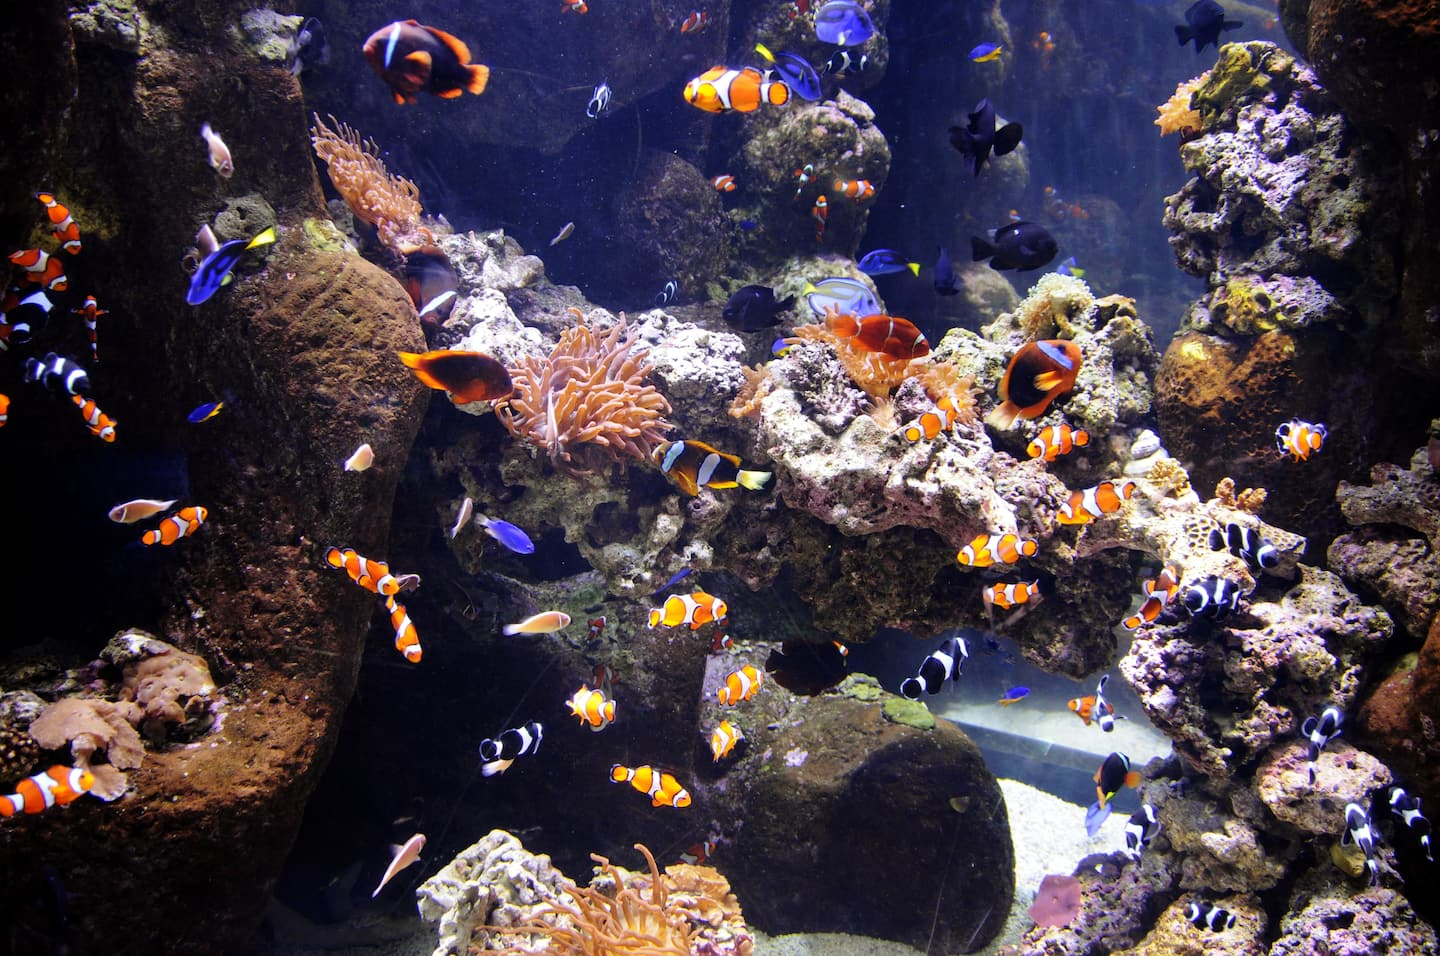 Fish tank cleaning service - Where Can I Place An Aquarium